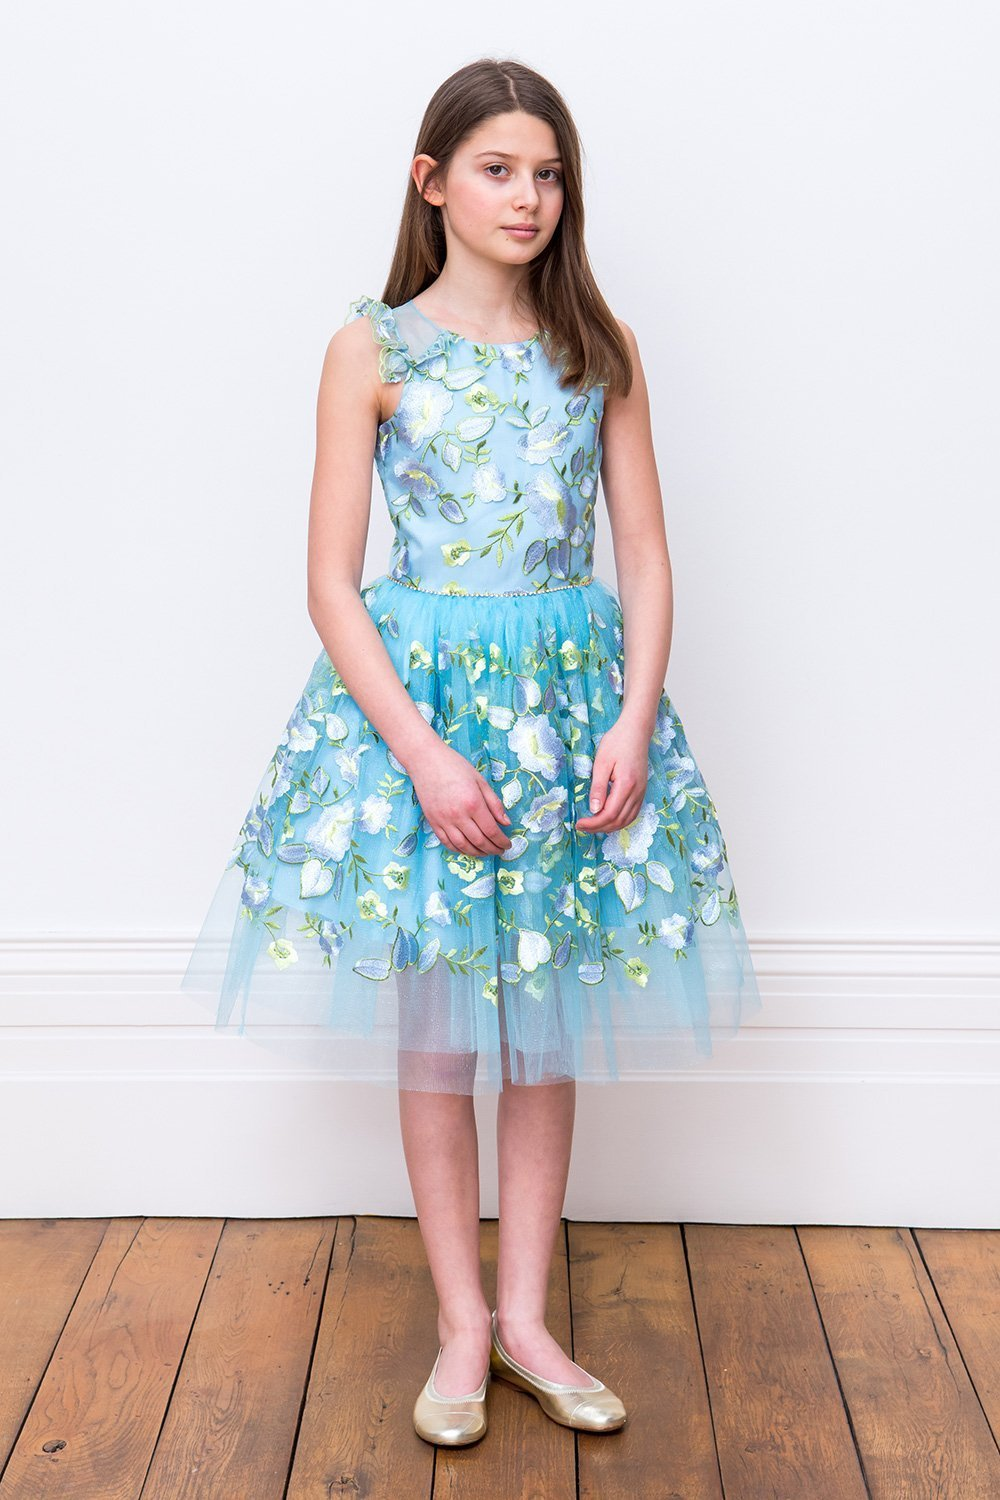 Vestido de novia de pétalos azules - David Childrens Wear